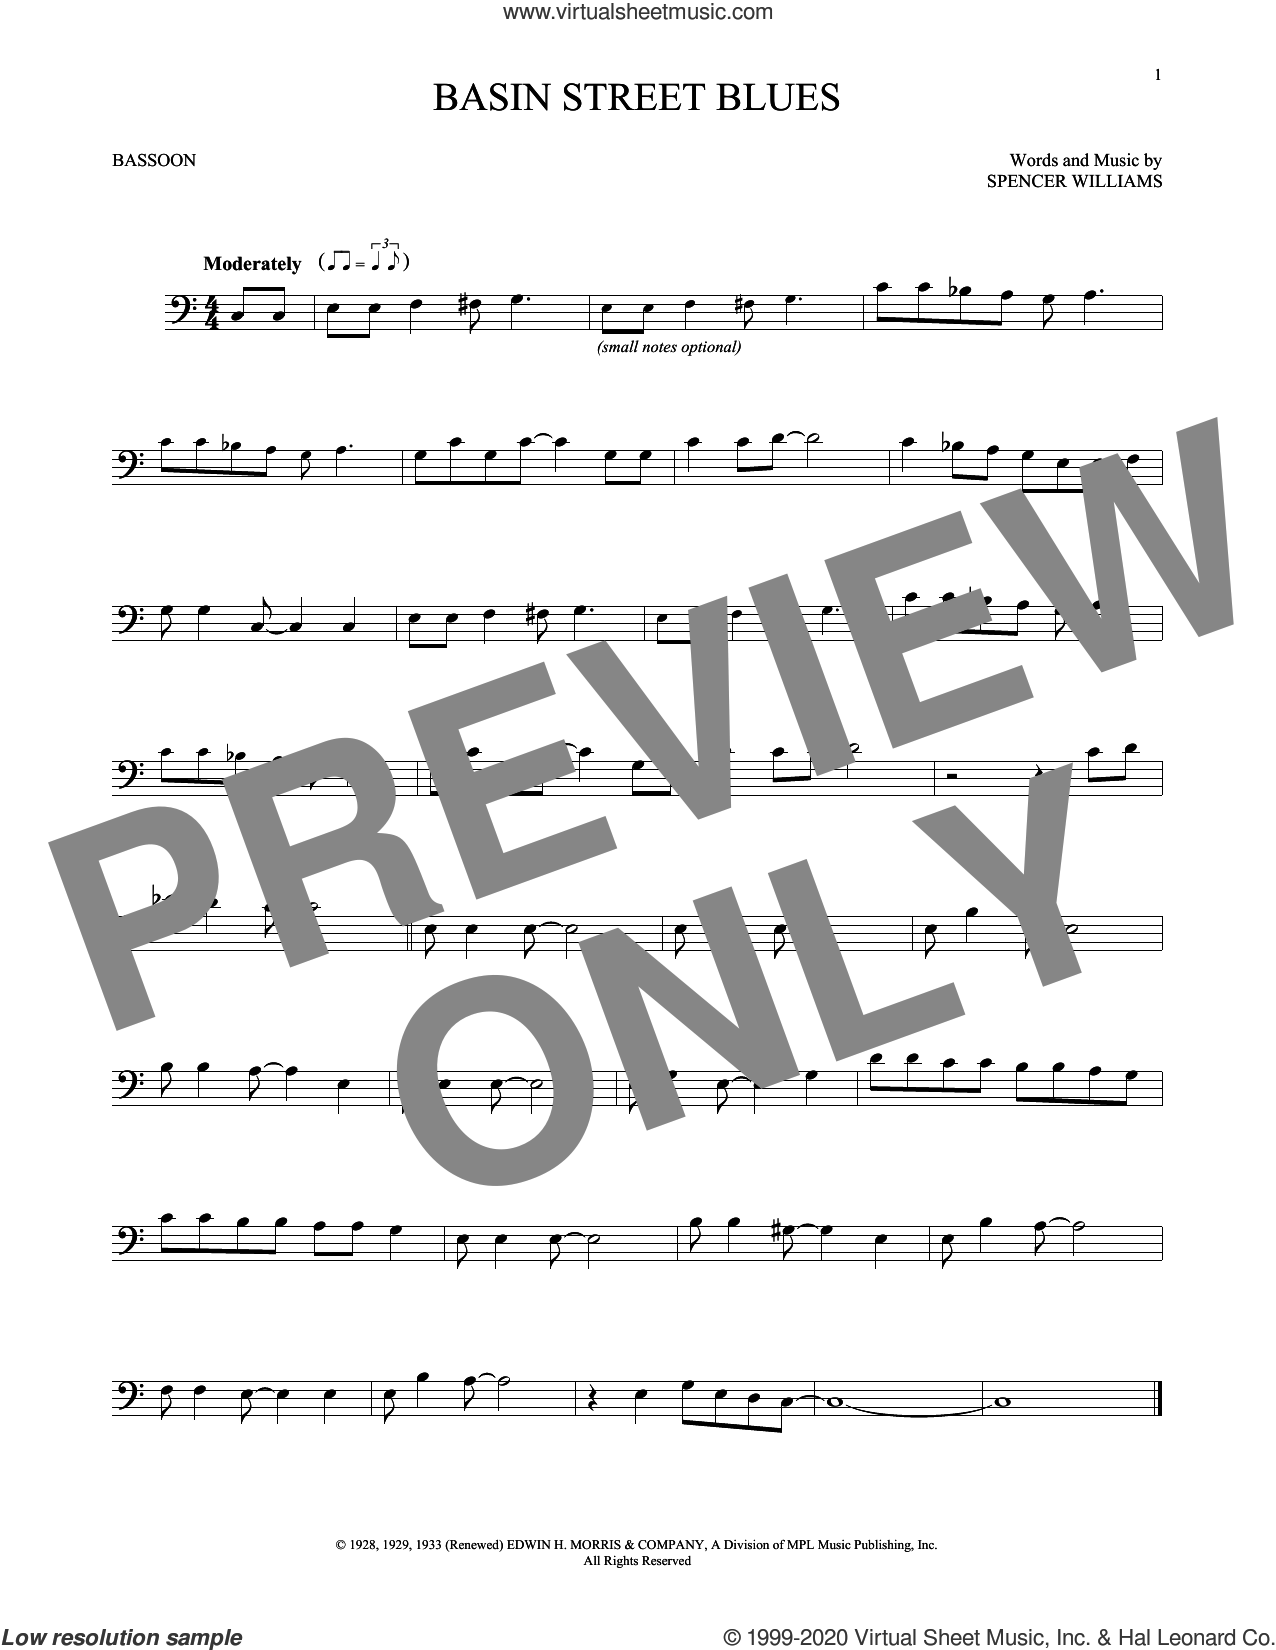 Basin Street Blues sheet music for Bassoon Solo by Spencer Williams, intermediate skill level